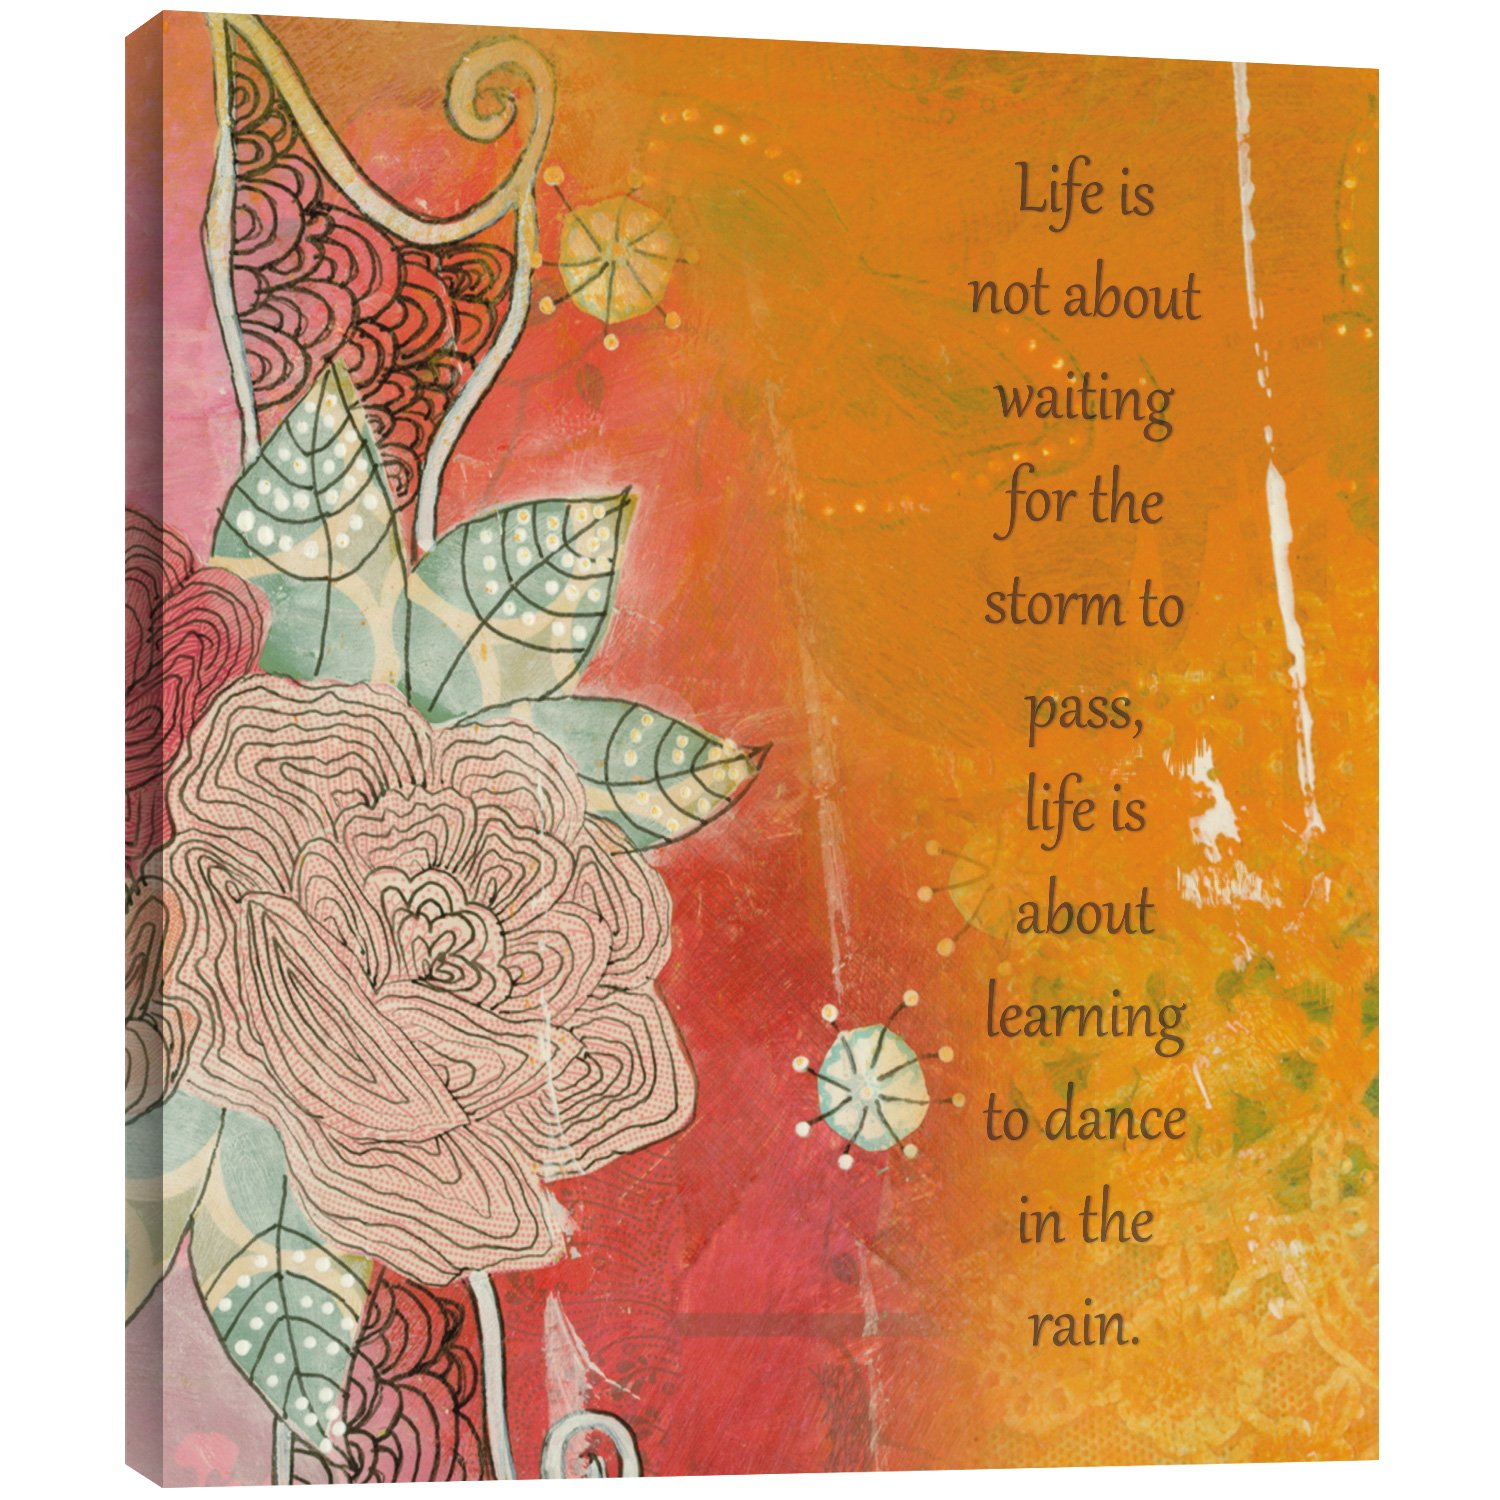 Tree-Free Greetings EcoArt Home Decor Wall Plaque, 11.25 x 11.25 Inches, Dance In The Rain Themed Inspriational Art (81154)